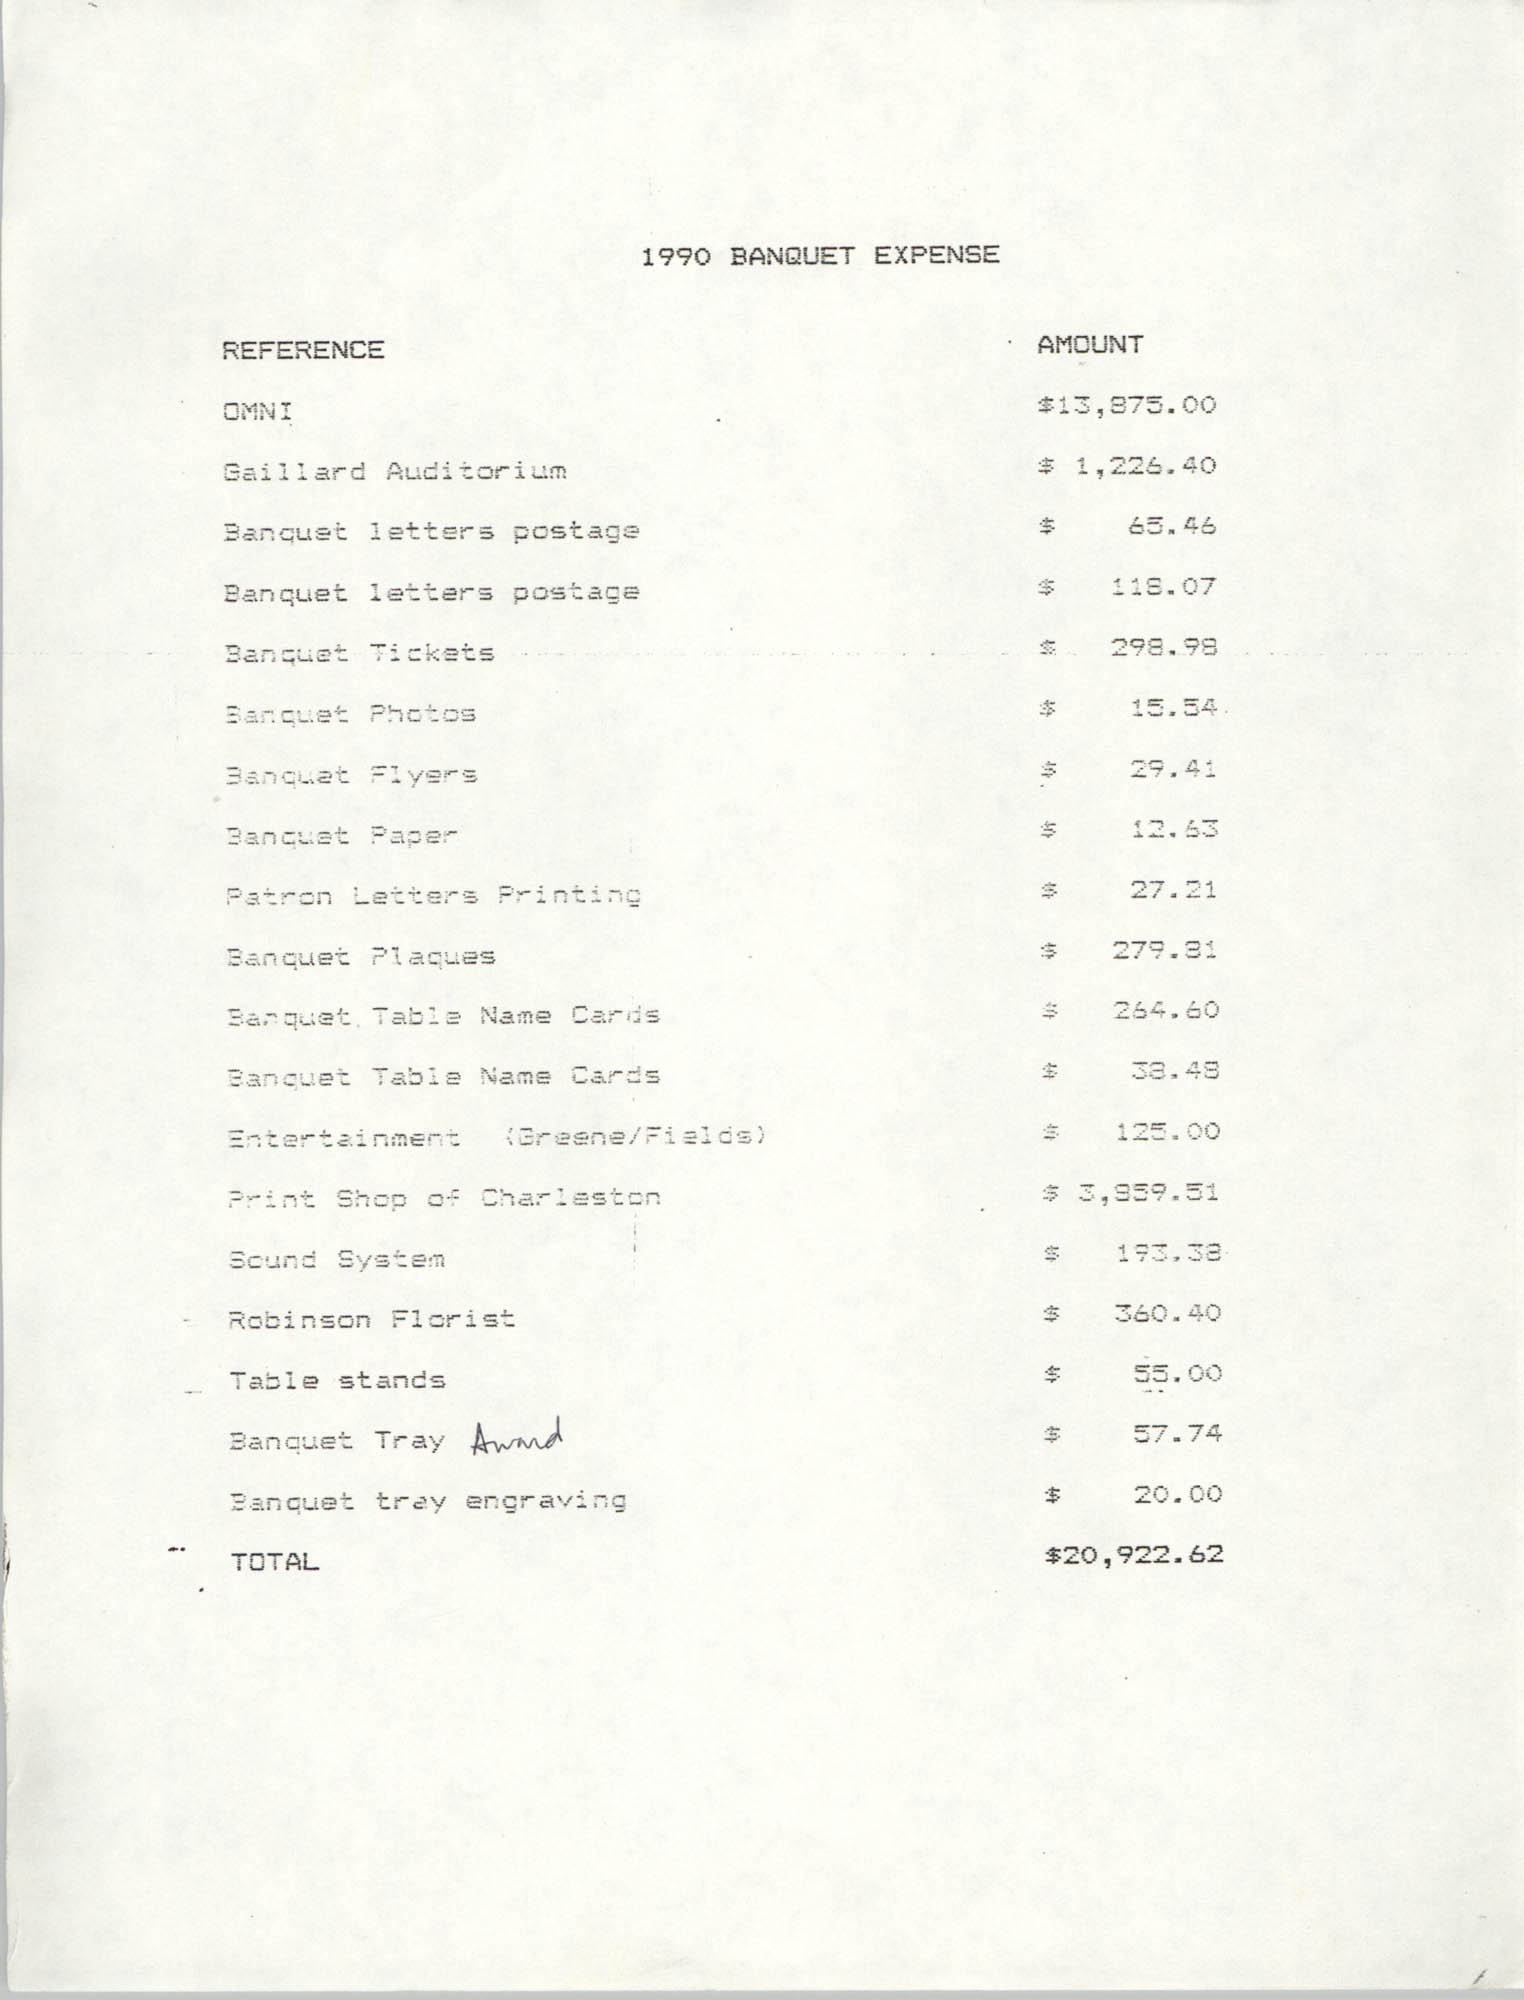 List of 1990 Banquet Expenses